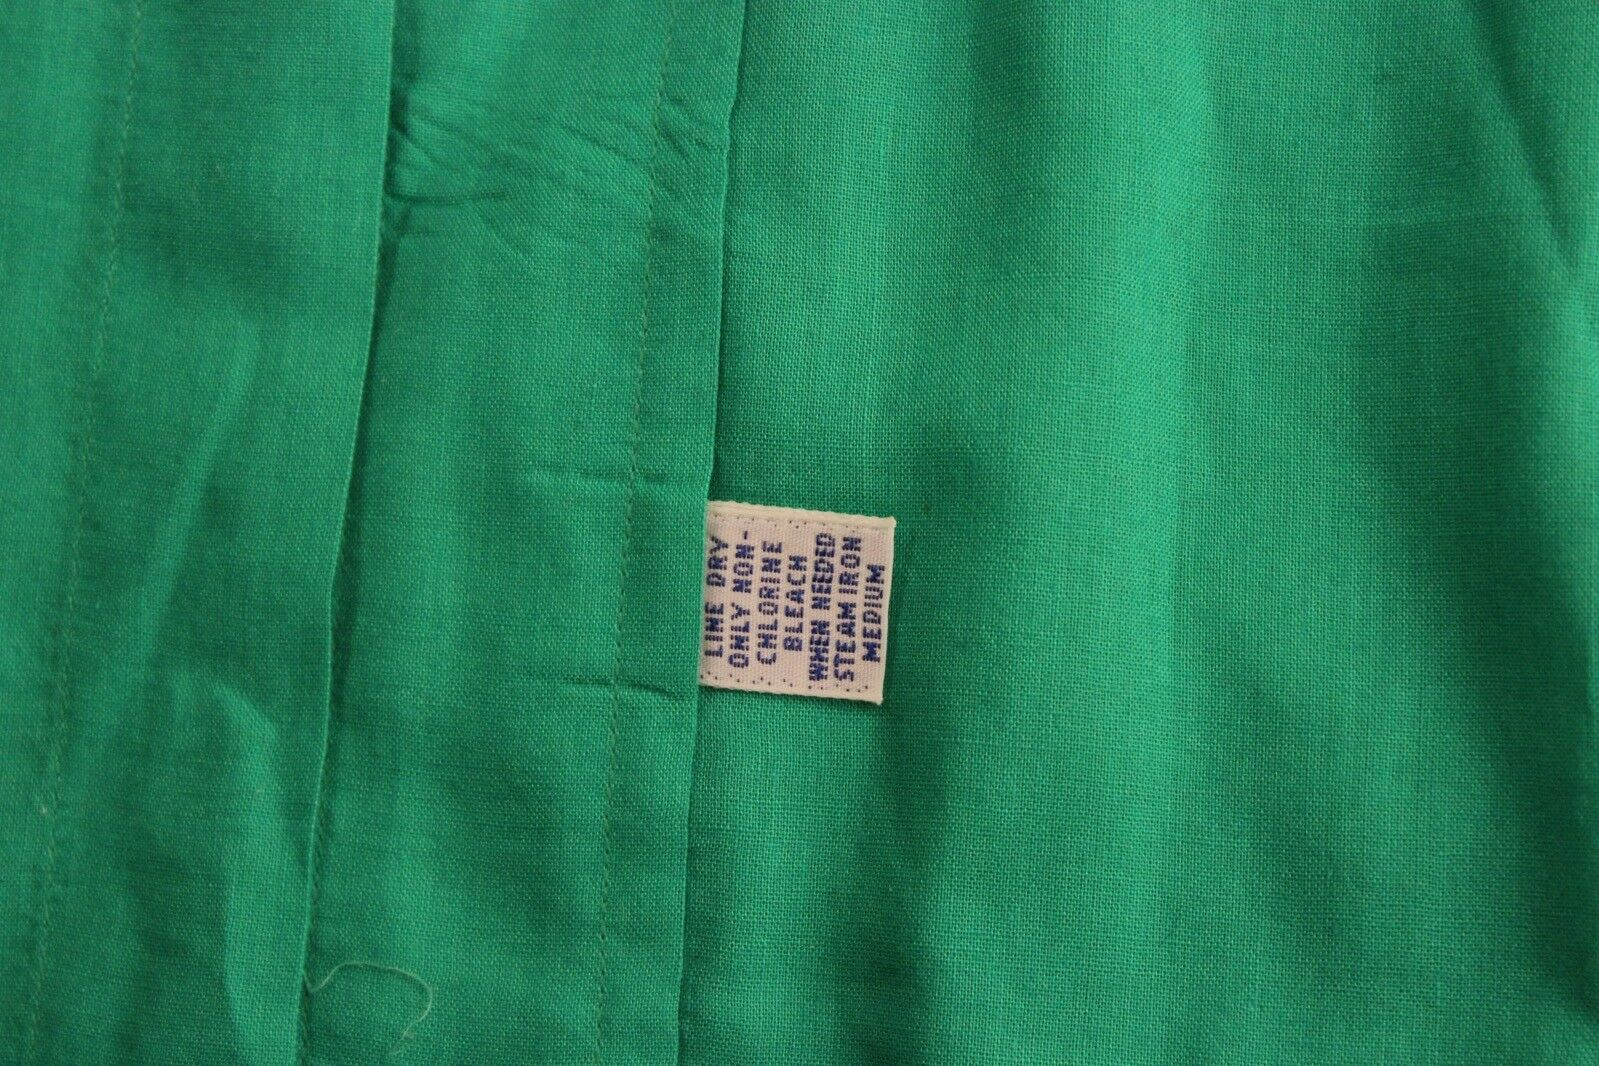 VTG 80's 90's Polo Ralph Lauren Happy Green Butto… - image 2